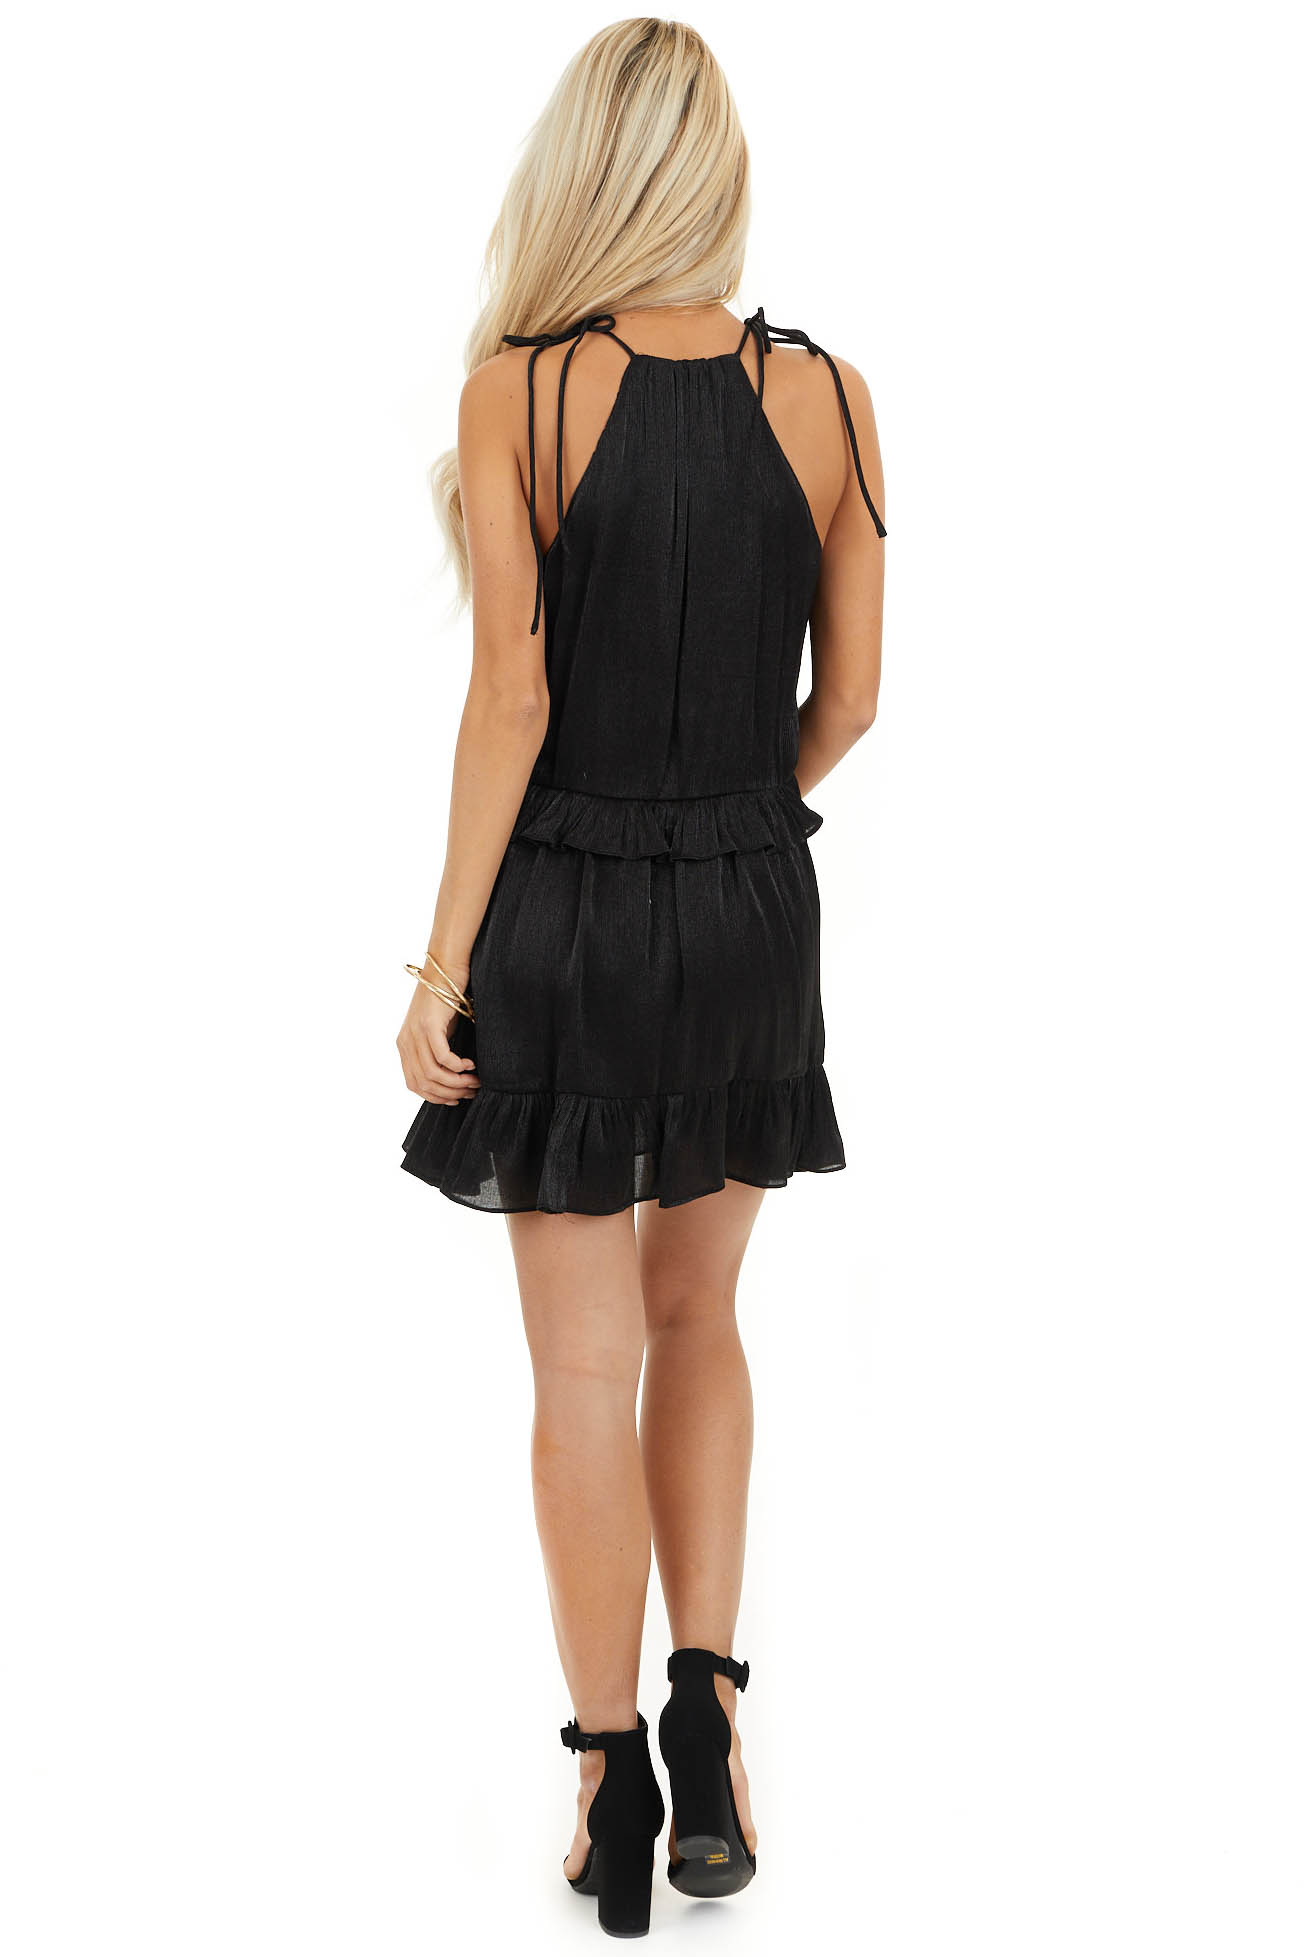 Black Sheen Sleeveless Mini Dress with High Neckline and Tie back full body